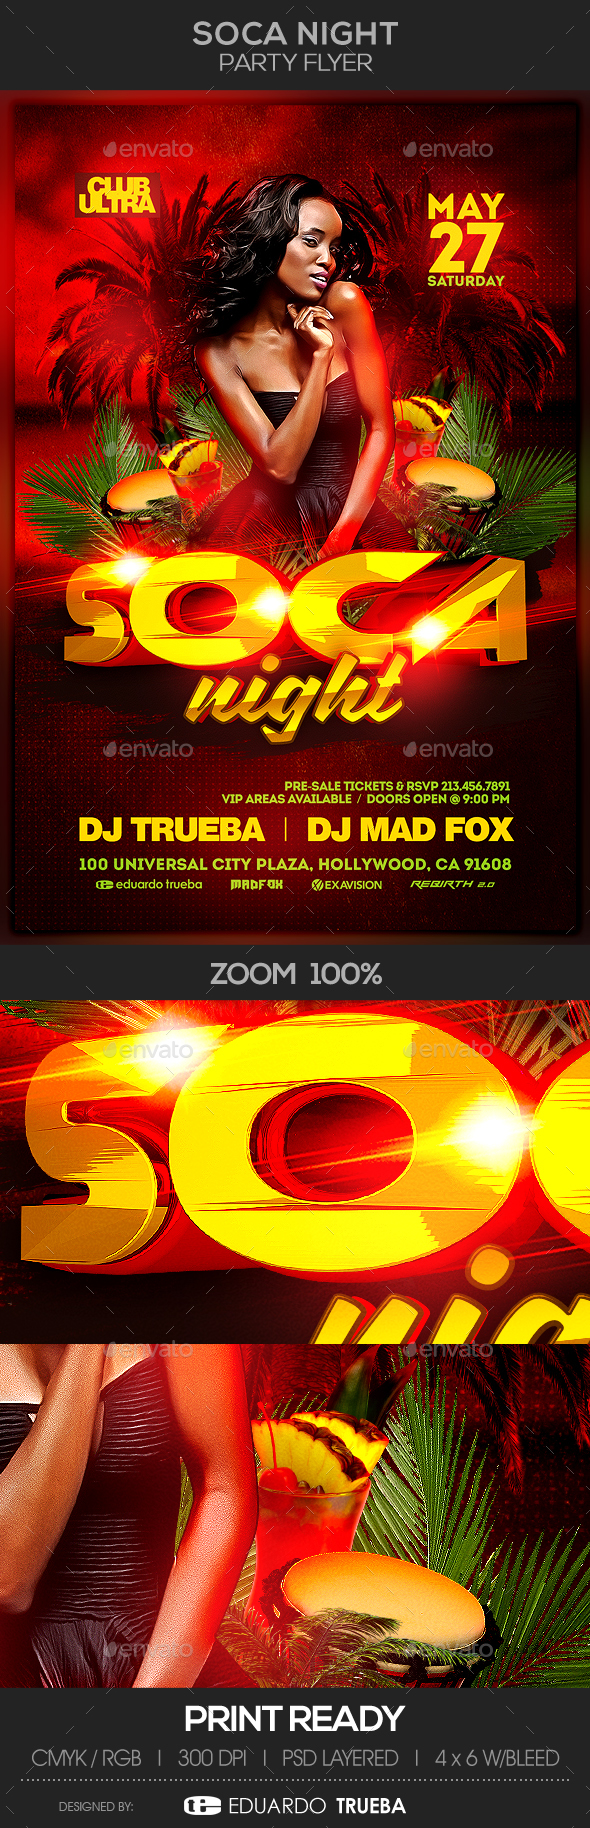 Soca Night Party Flyer - Clubs & Parties Events